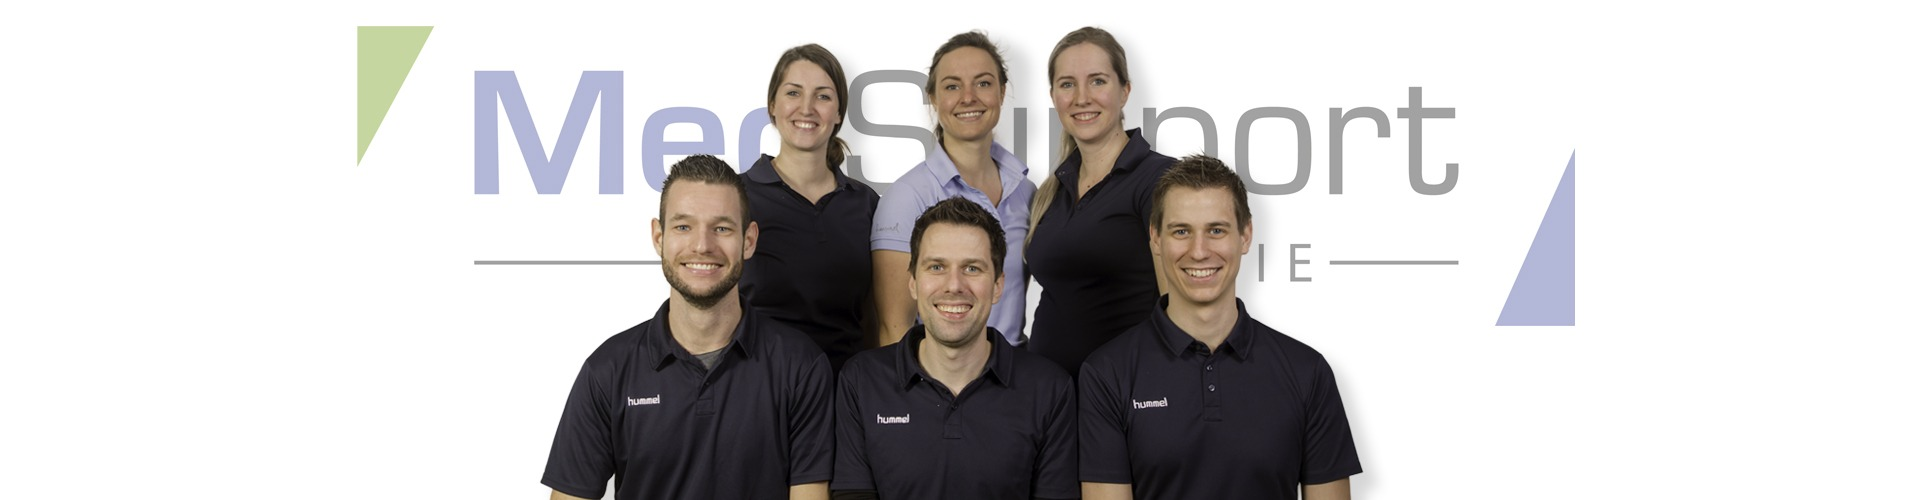 Medsupport team